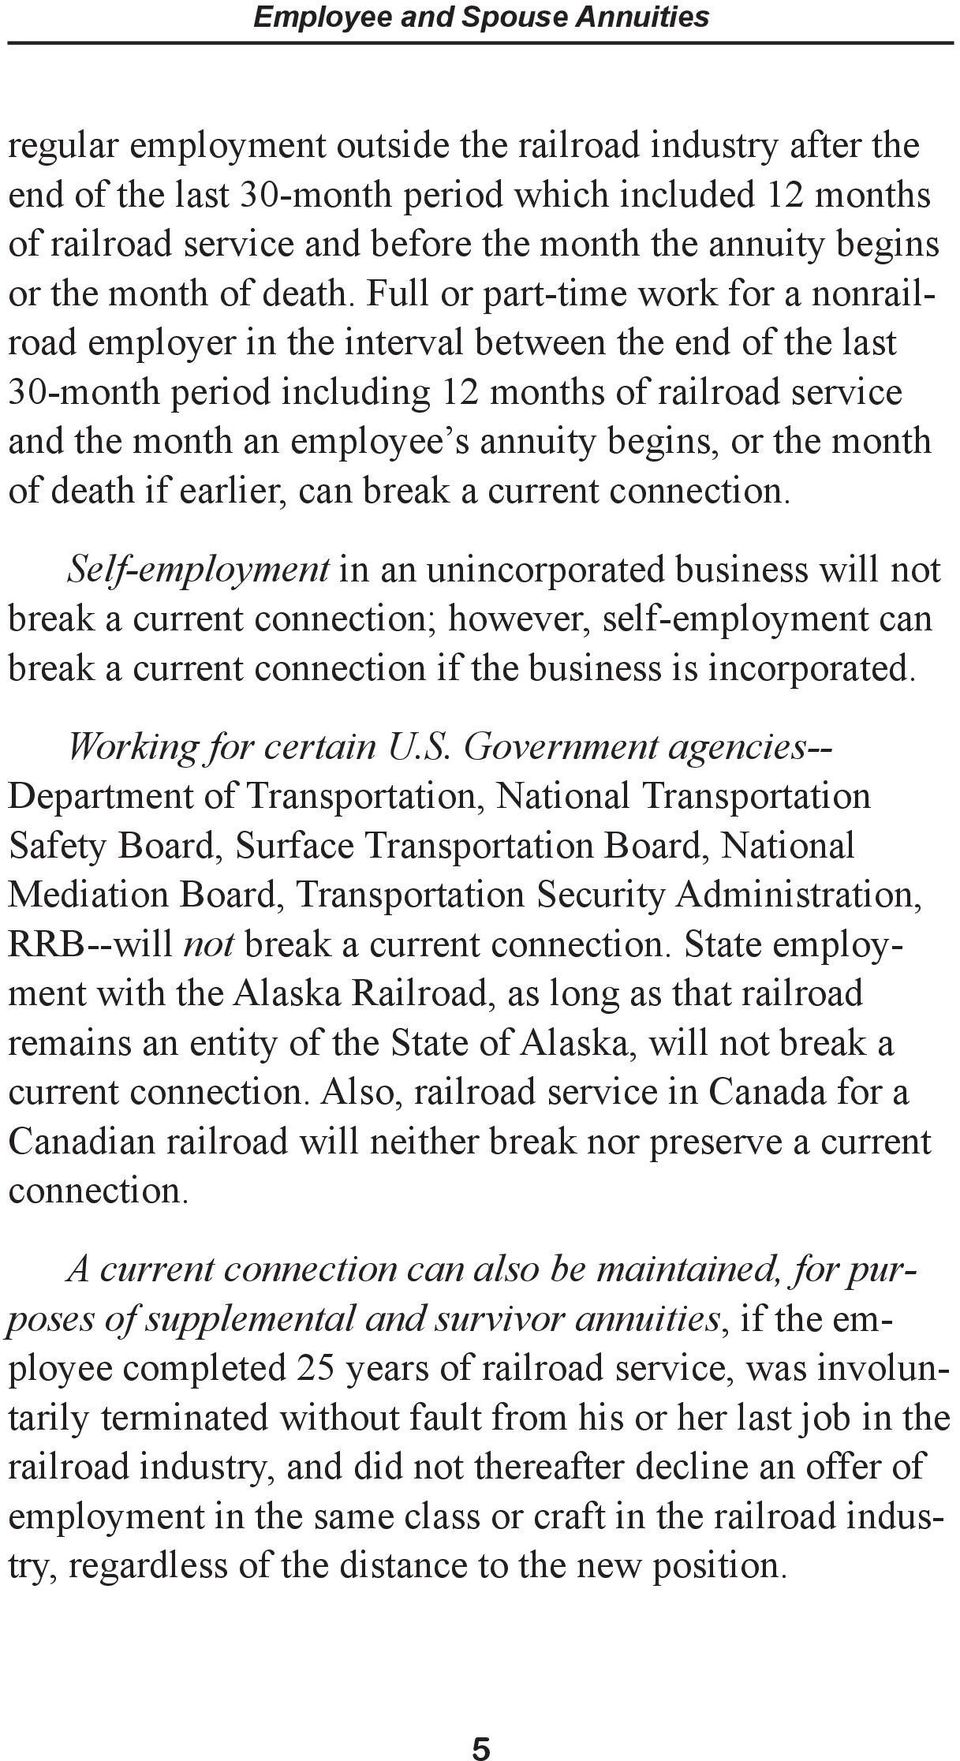 Full or part-time work for a nonrailroad employer in the interval between the end of the last 30-month period including 12 months of railroad service and the month an employee s annuity begins, or